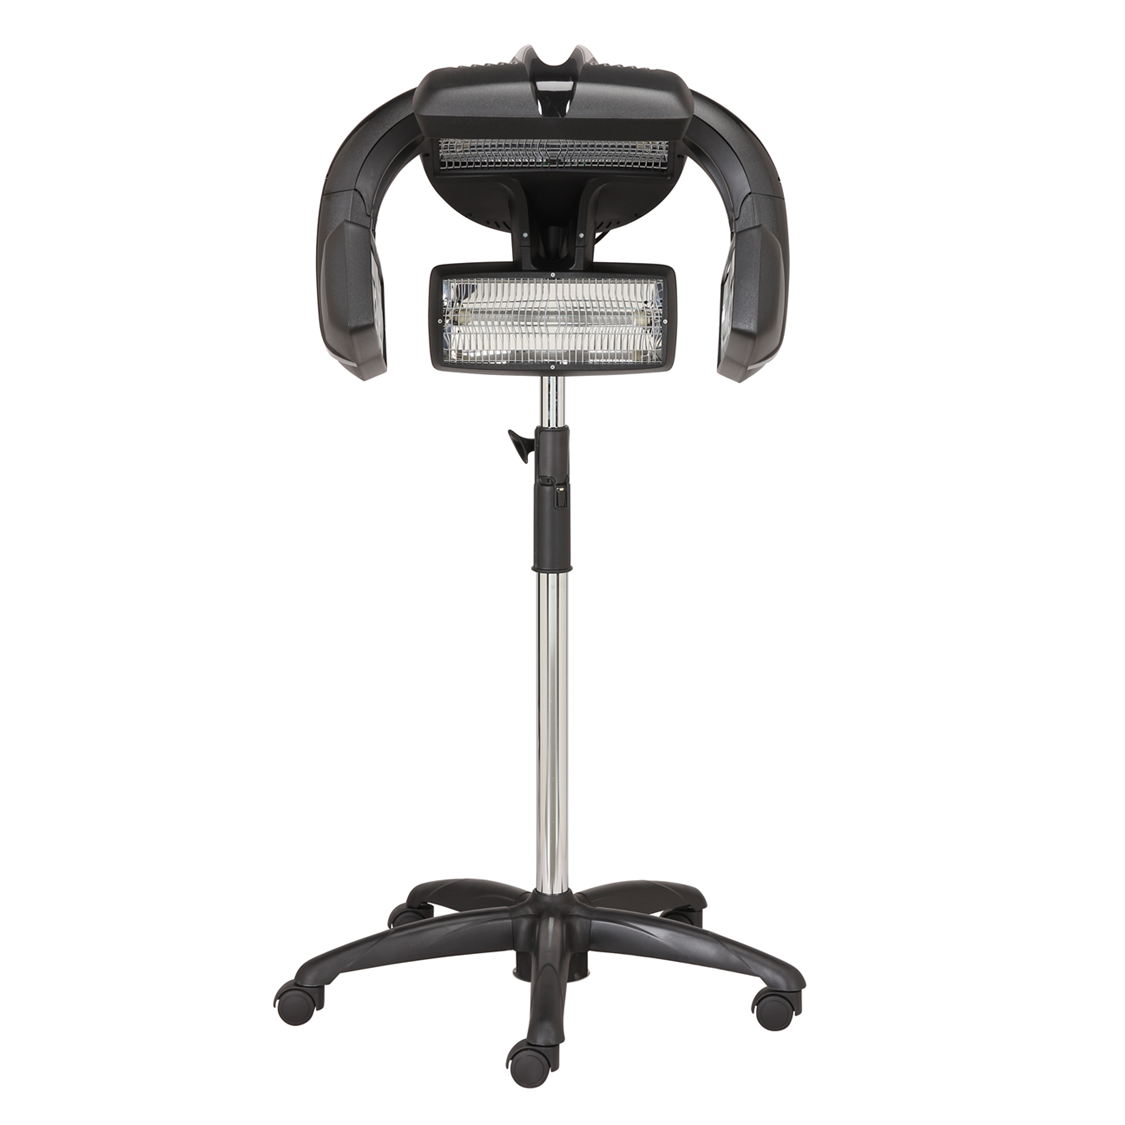 Bravura Far-Infrared Color Processor Rollerstand - Garfield Commercial Enterprises Salon Equipment Spa Furniture Barber Chair Luxury